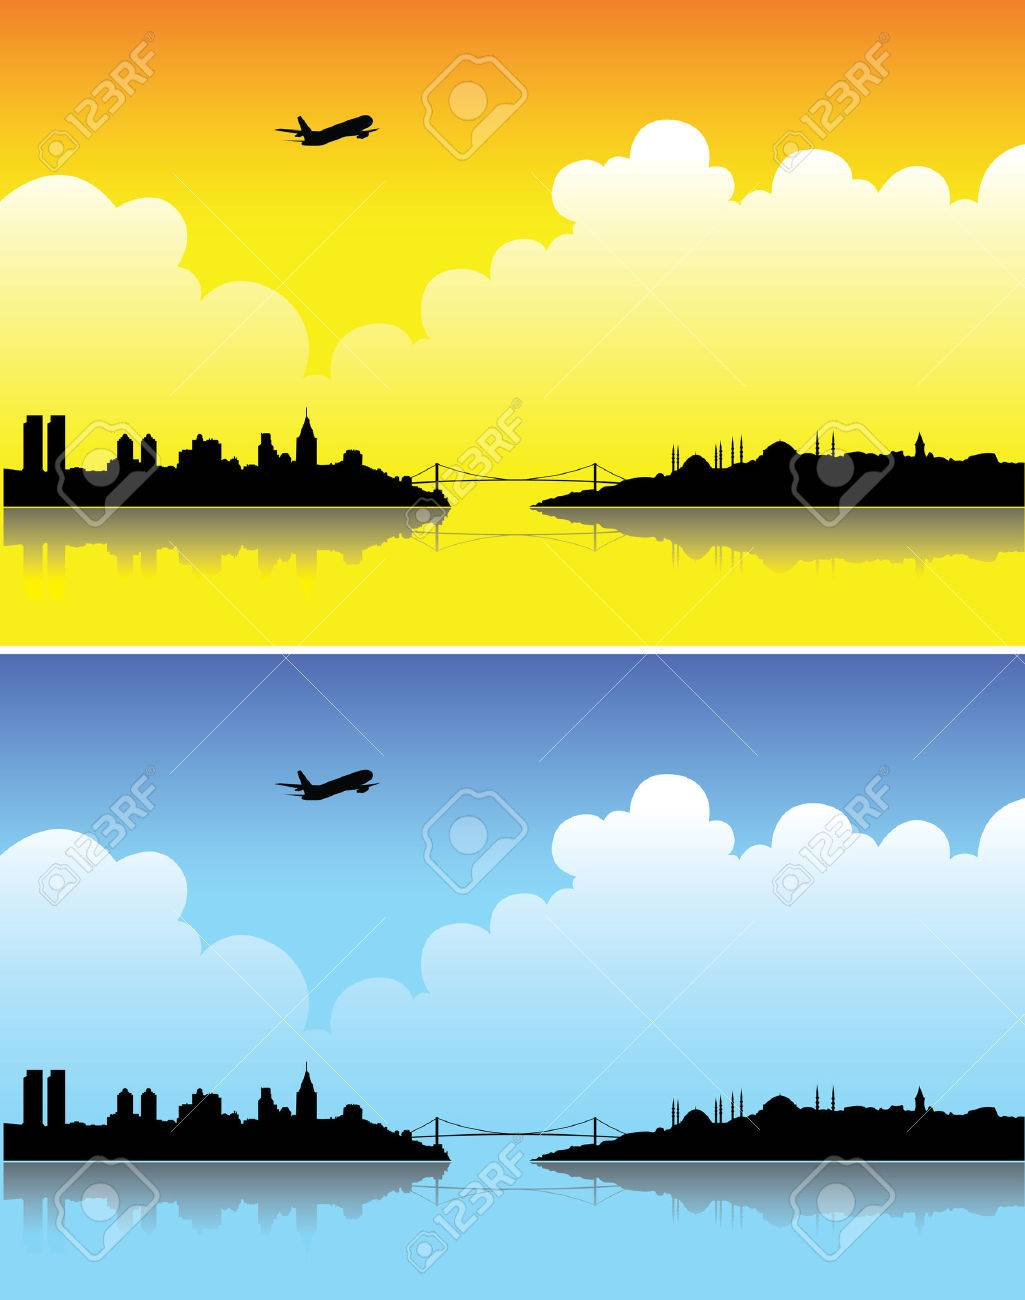 Istanbul silhouettes on a bright day and at dusk Stock Vector - 3923006